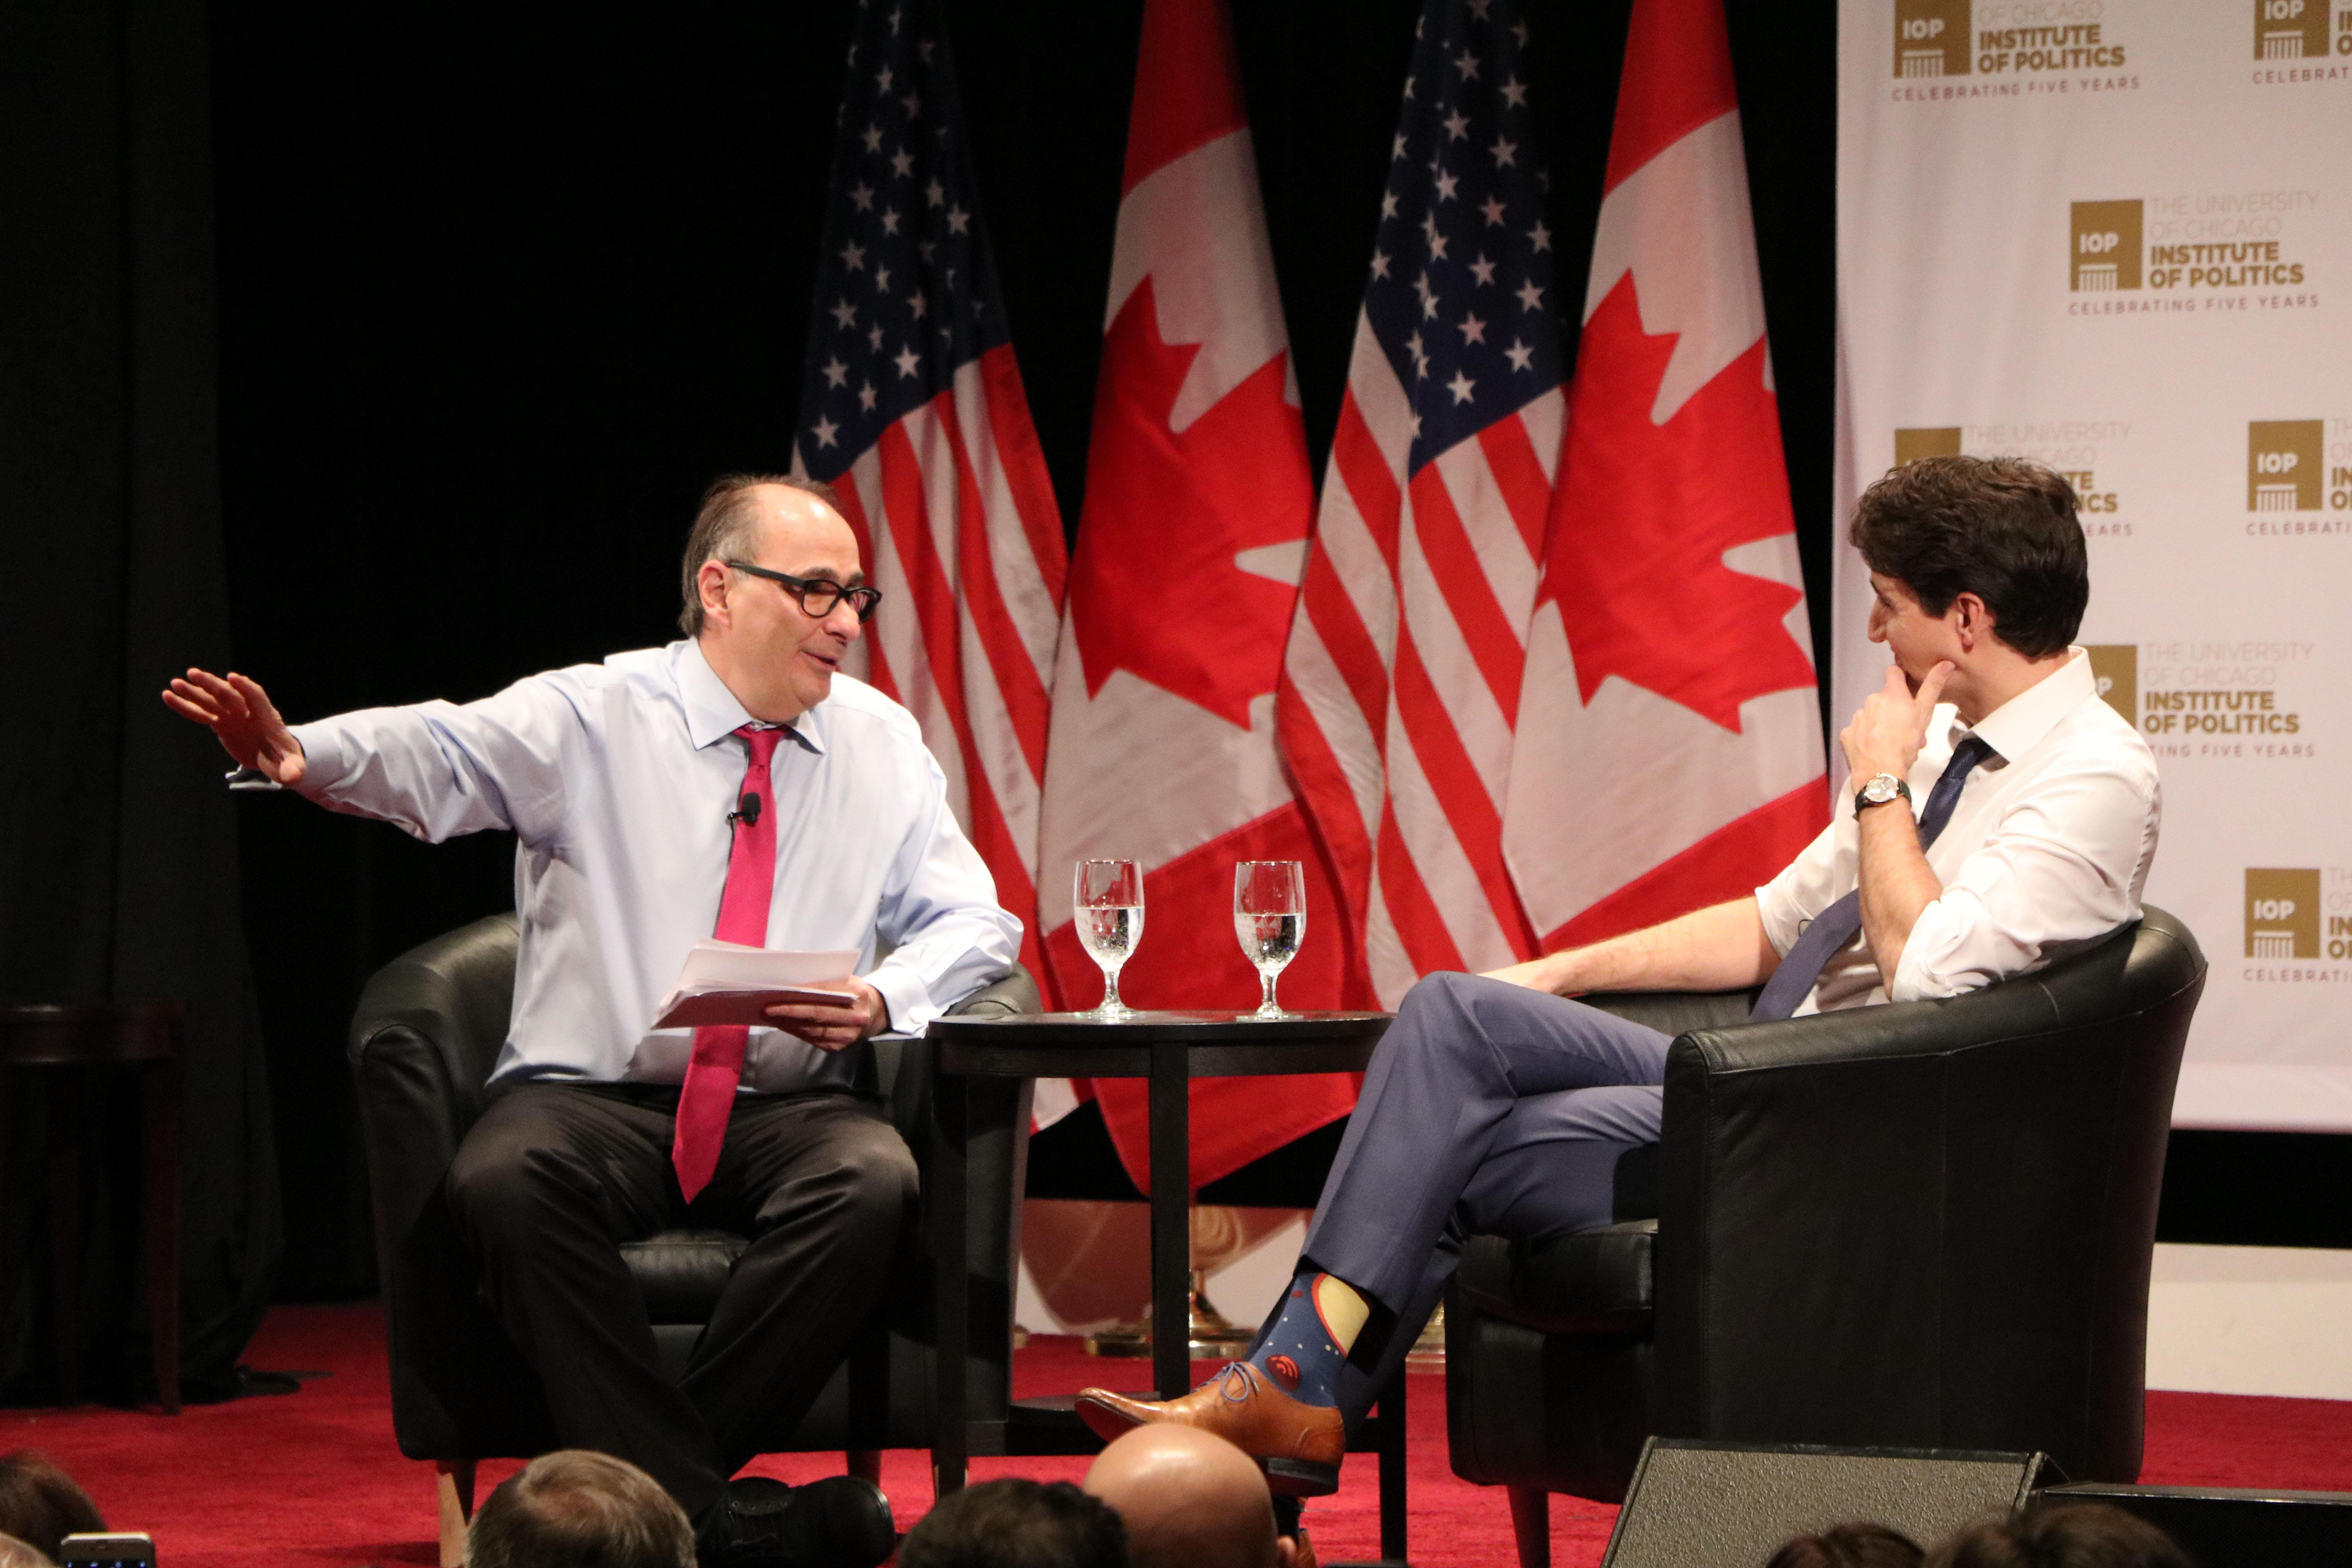 IOP founder and director David Axelrod asks Trudeau a question. (Evan Garcia / Chicago Tonight)